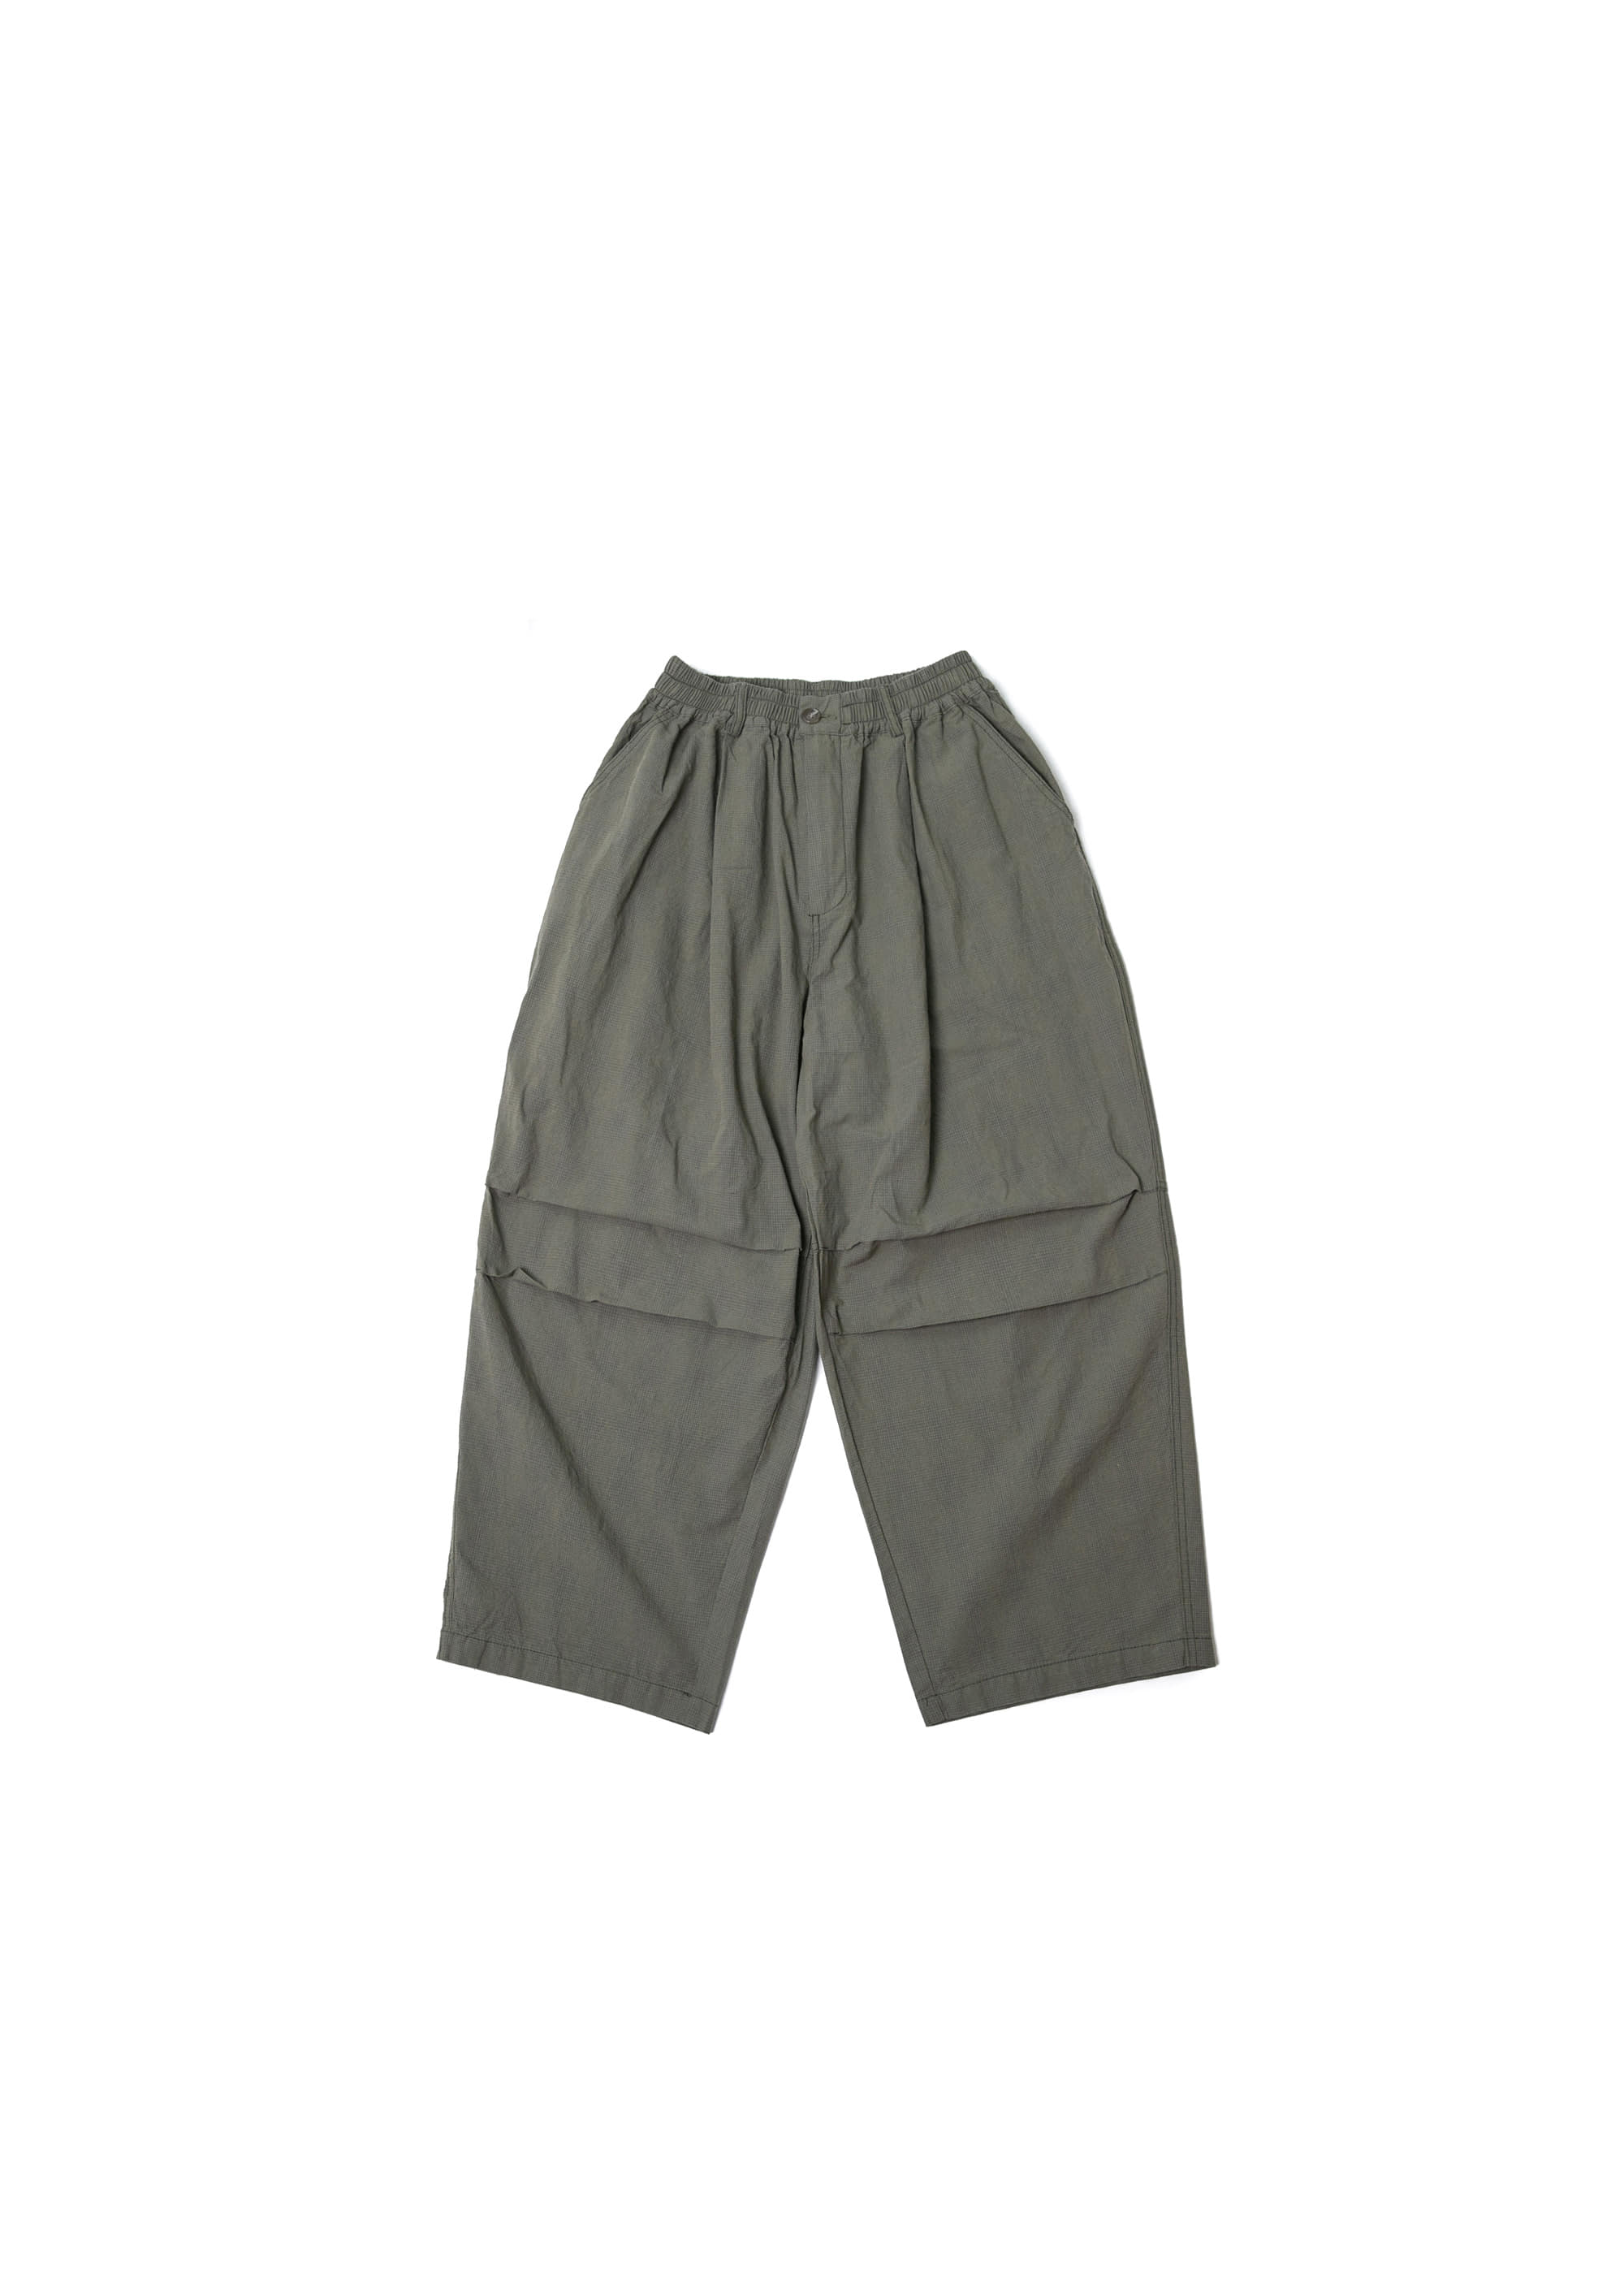 Square Check Army Balloon Pants - Khaki